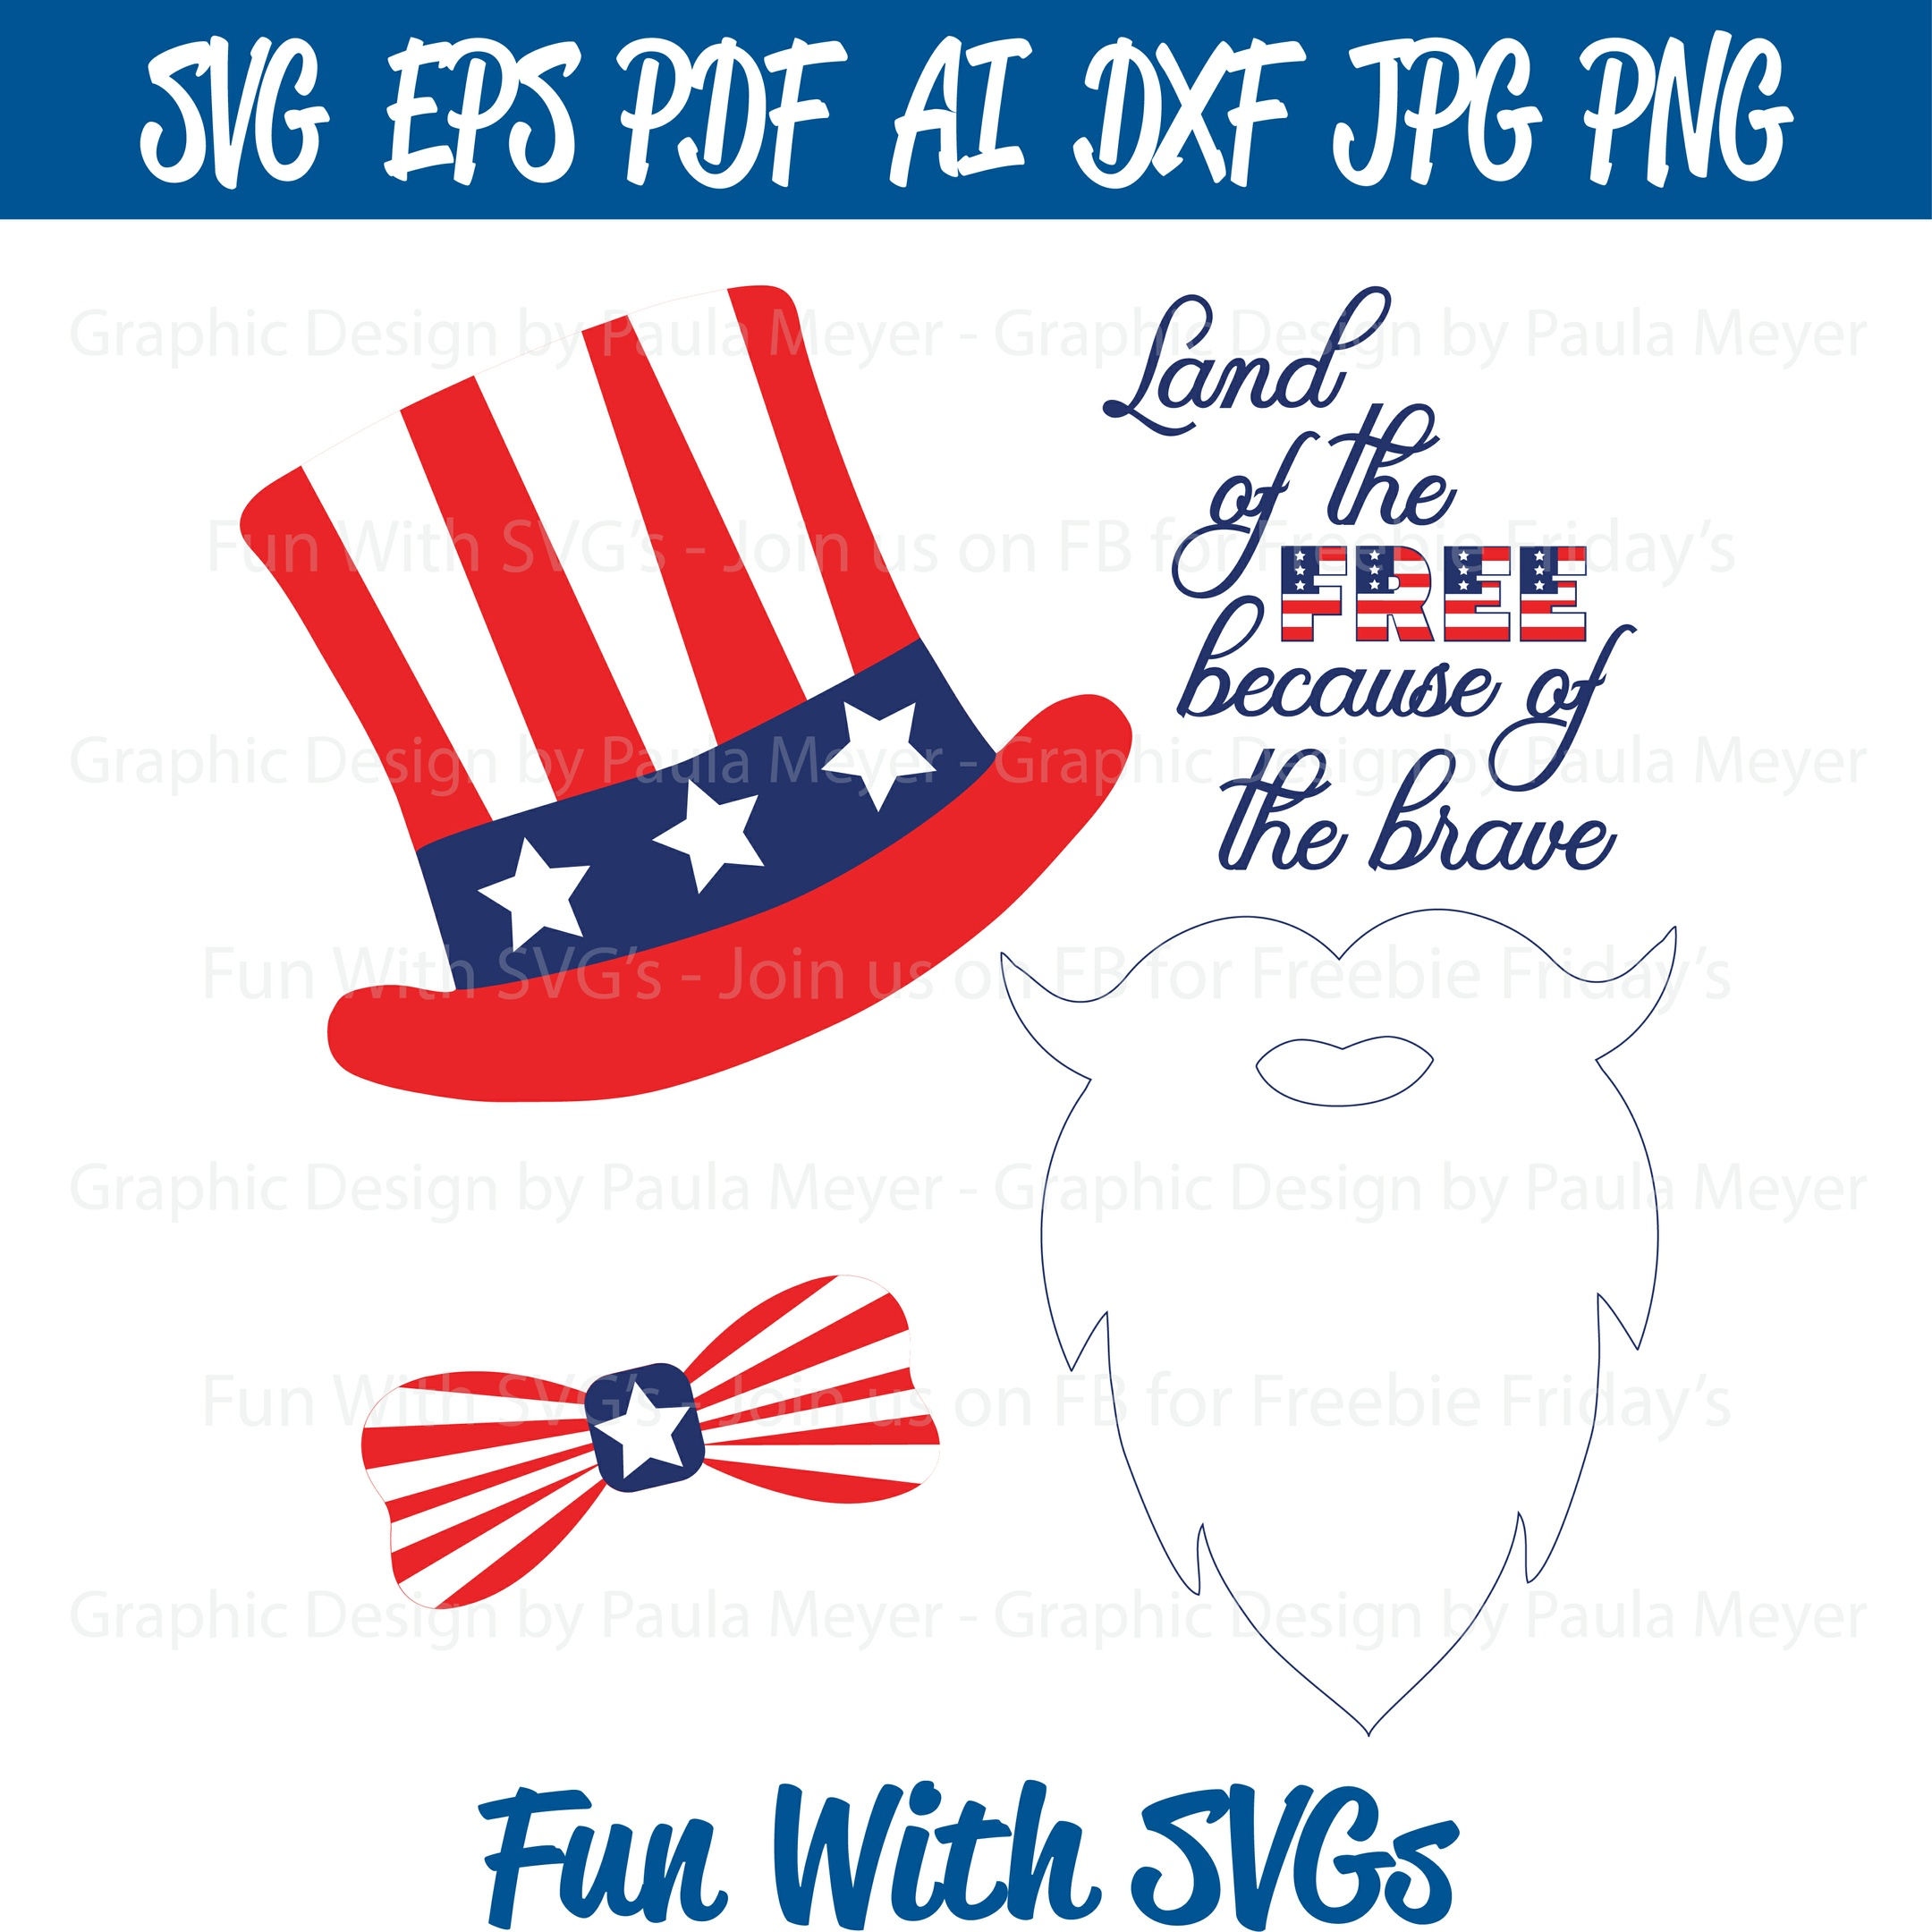 Uncle Sam Photo Booth Props - SVG Cut File, High Res. Printable Graphics and Editable Vector Art